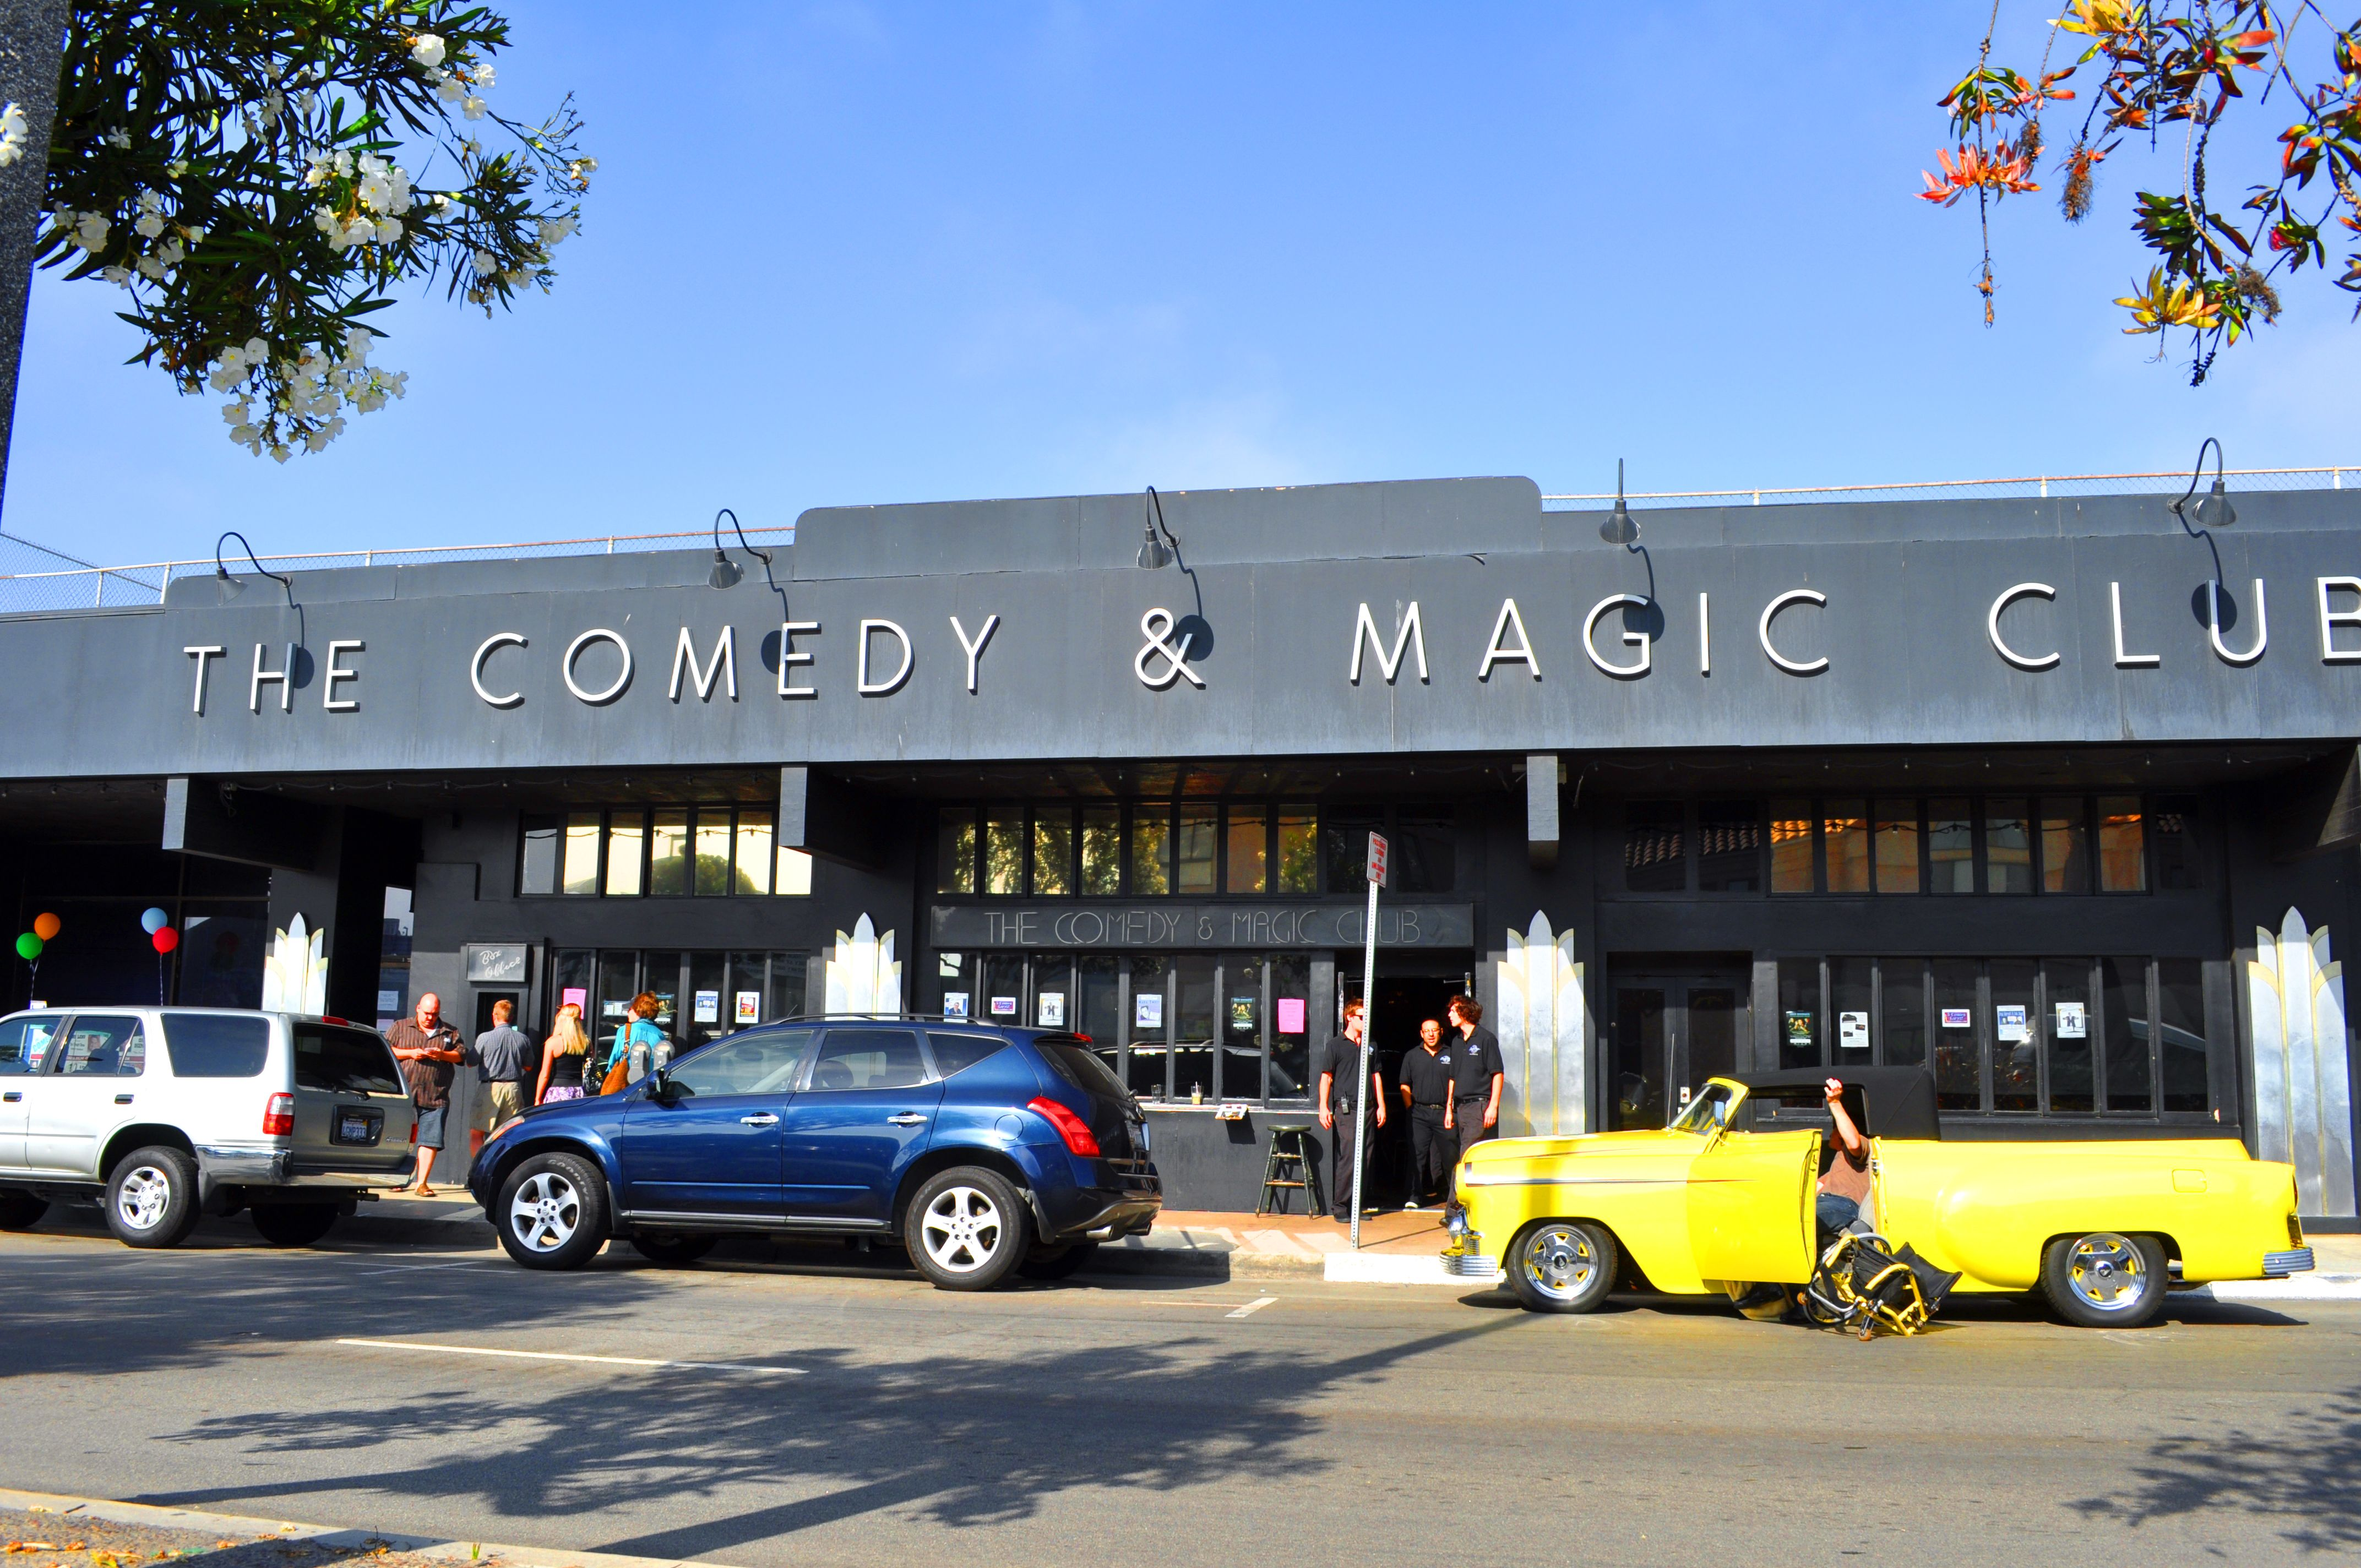 The Comedy and Magic Club A famous